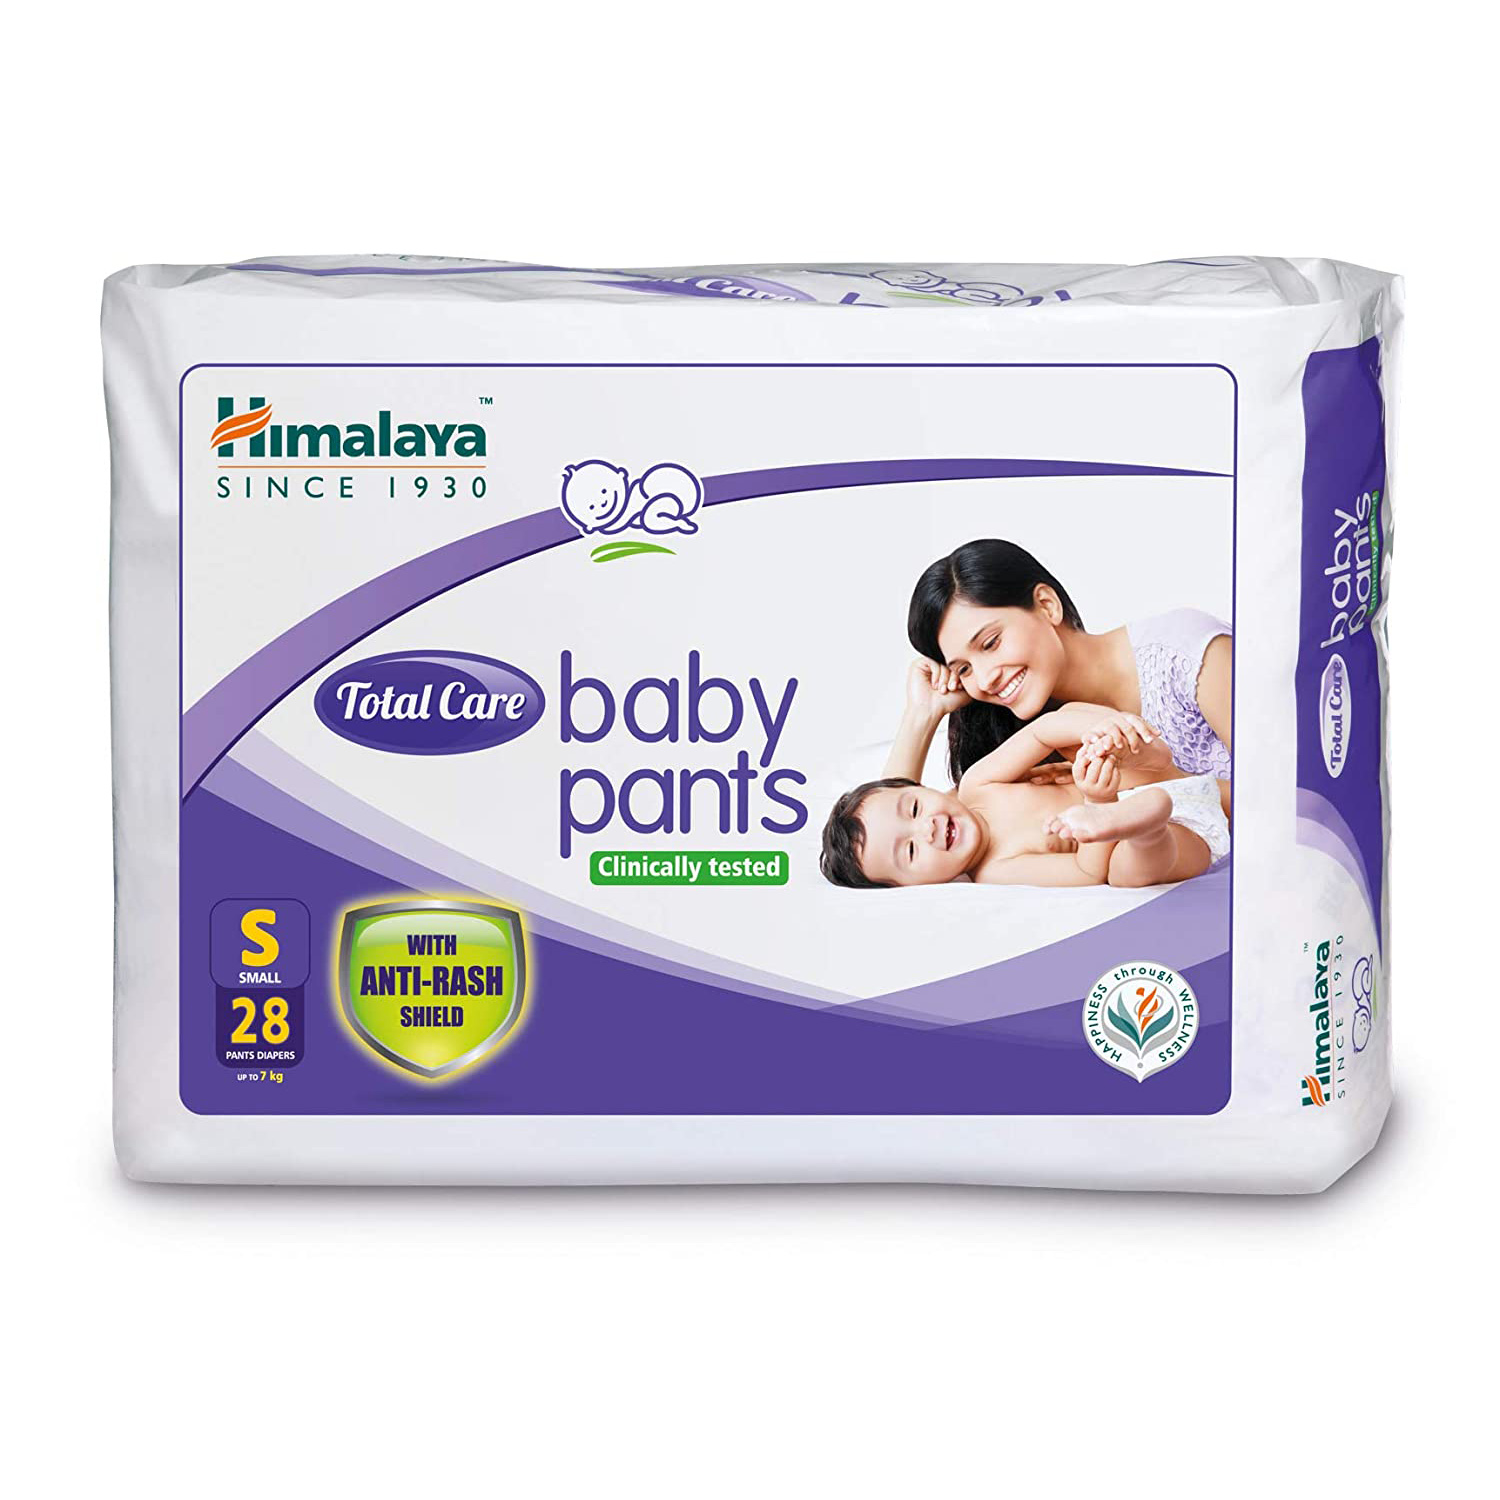 Himalaya Total Care Baby Pants, Small, 28 Count